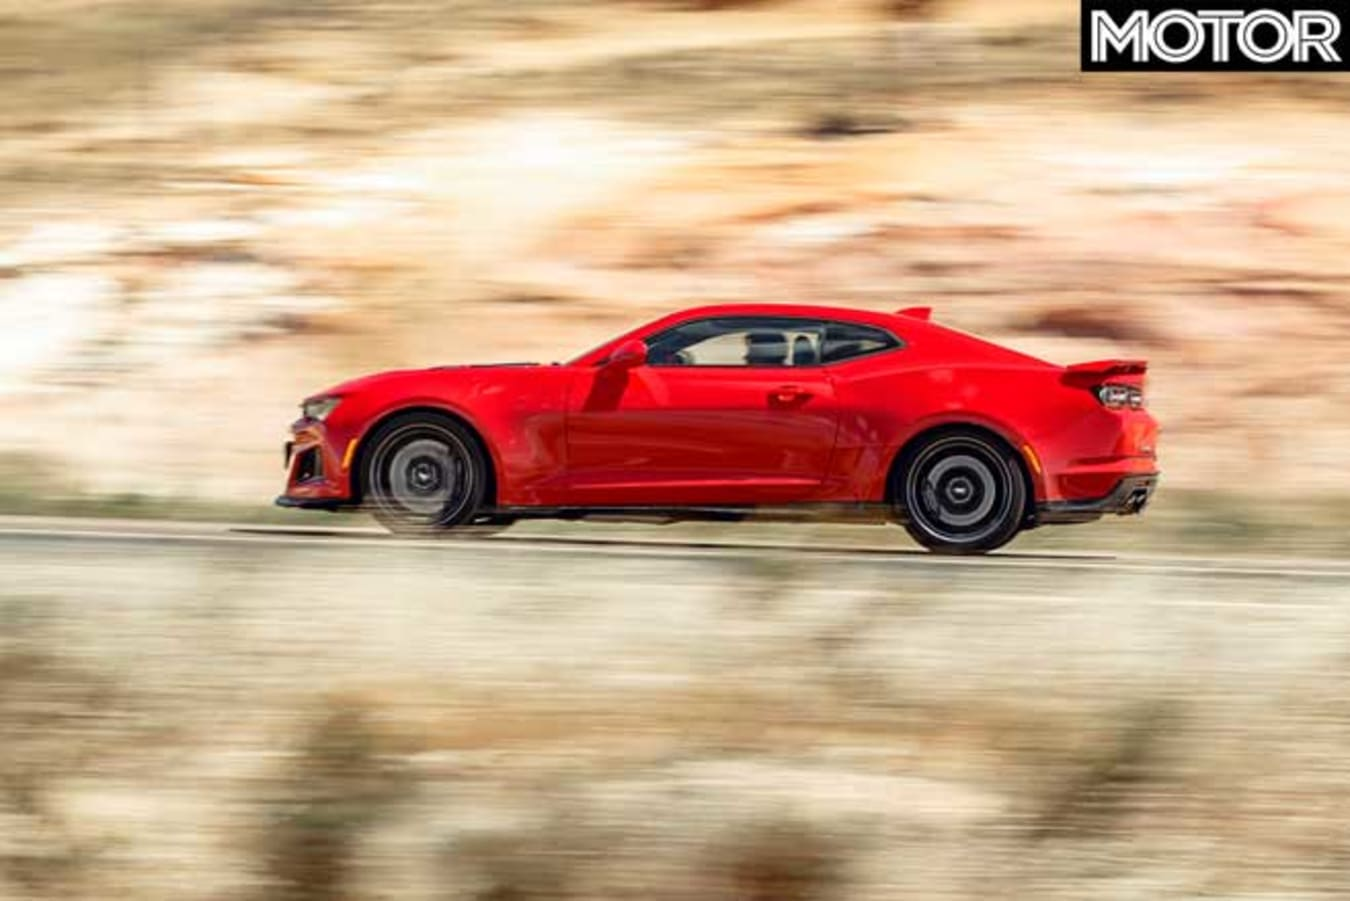 Performance Car Of The Year 2020 Road Course Chevrolet Camaro ZL 1 Review Jpg